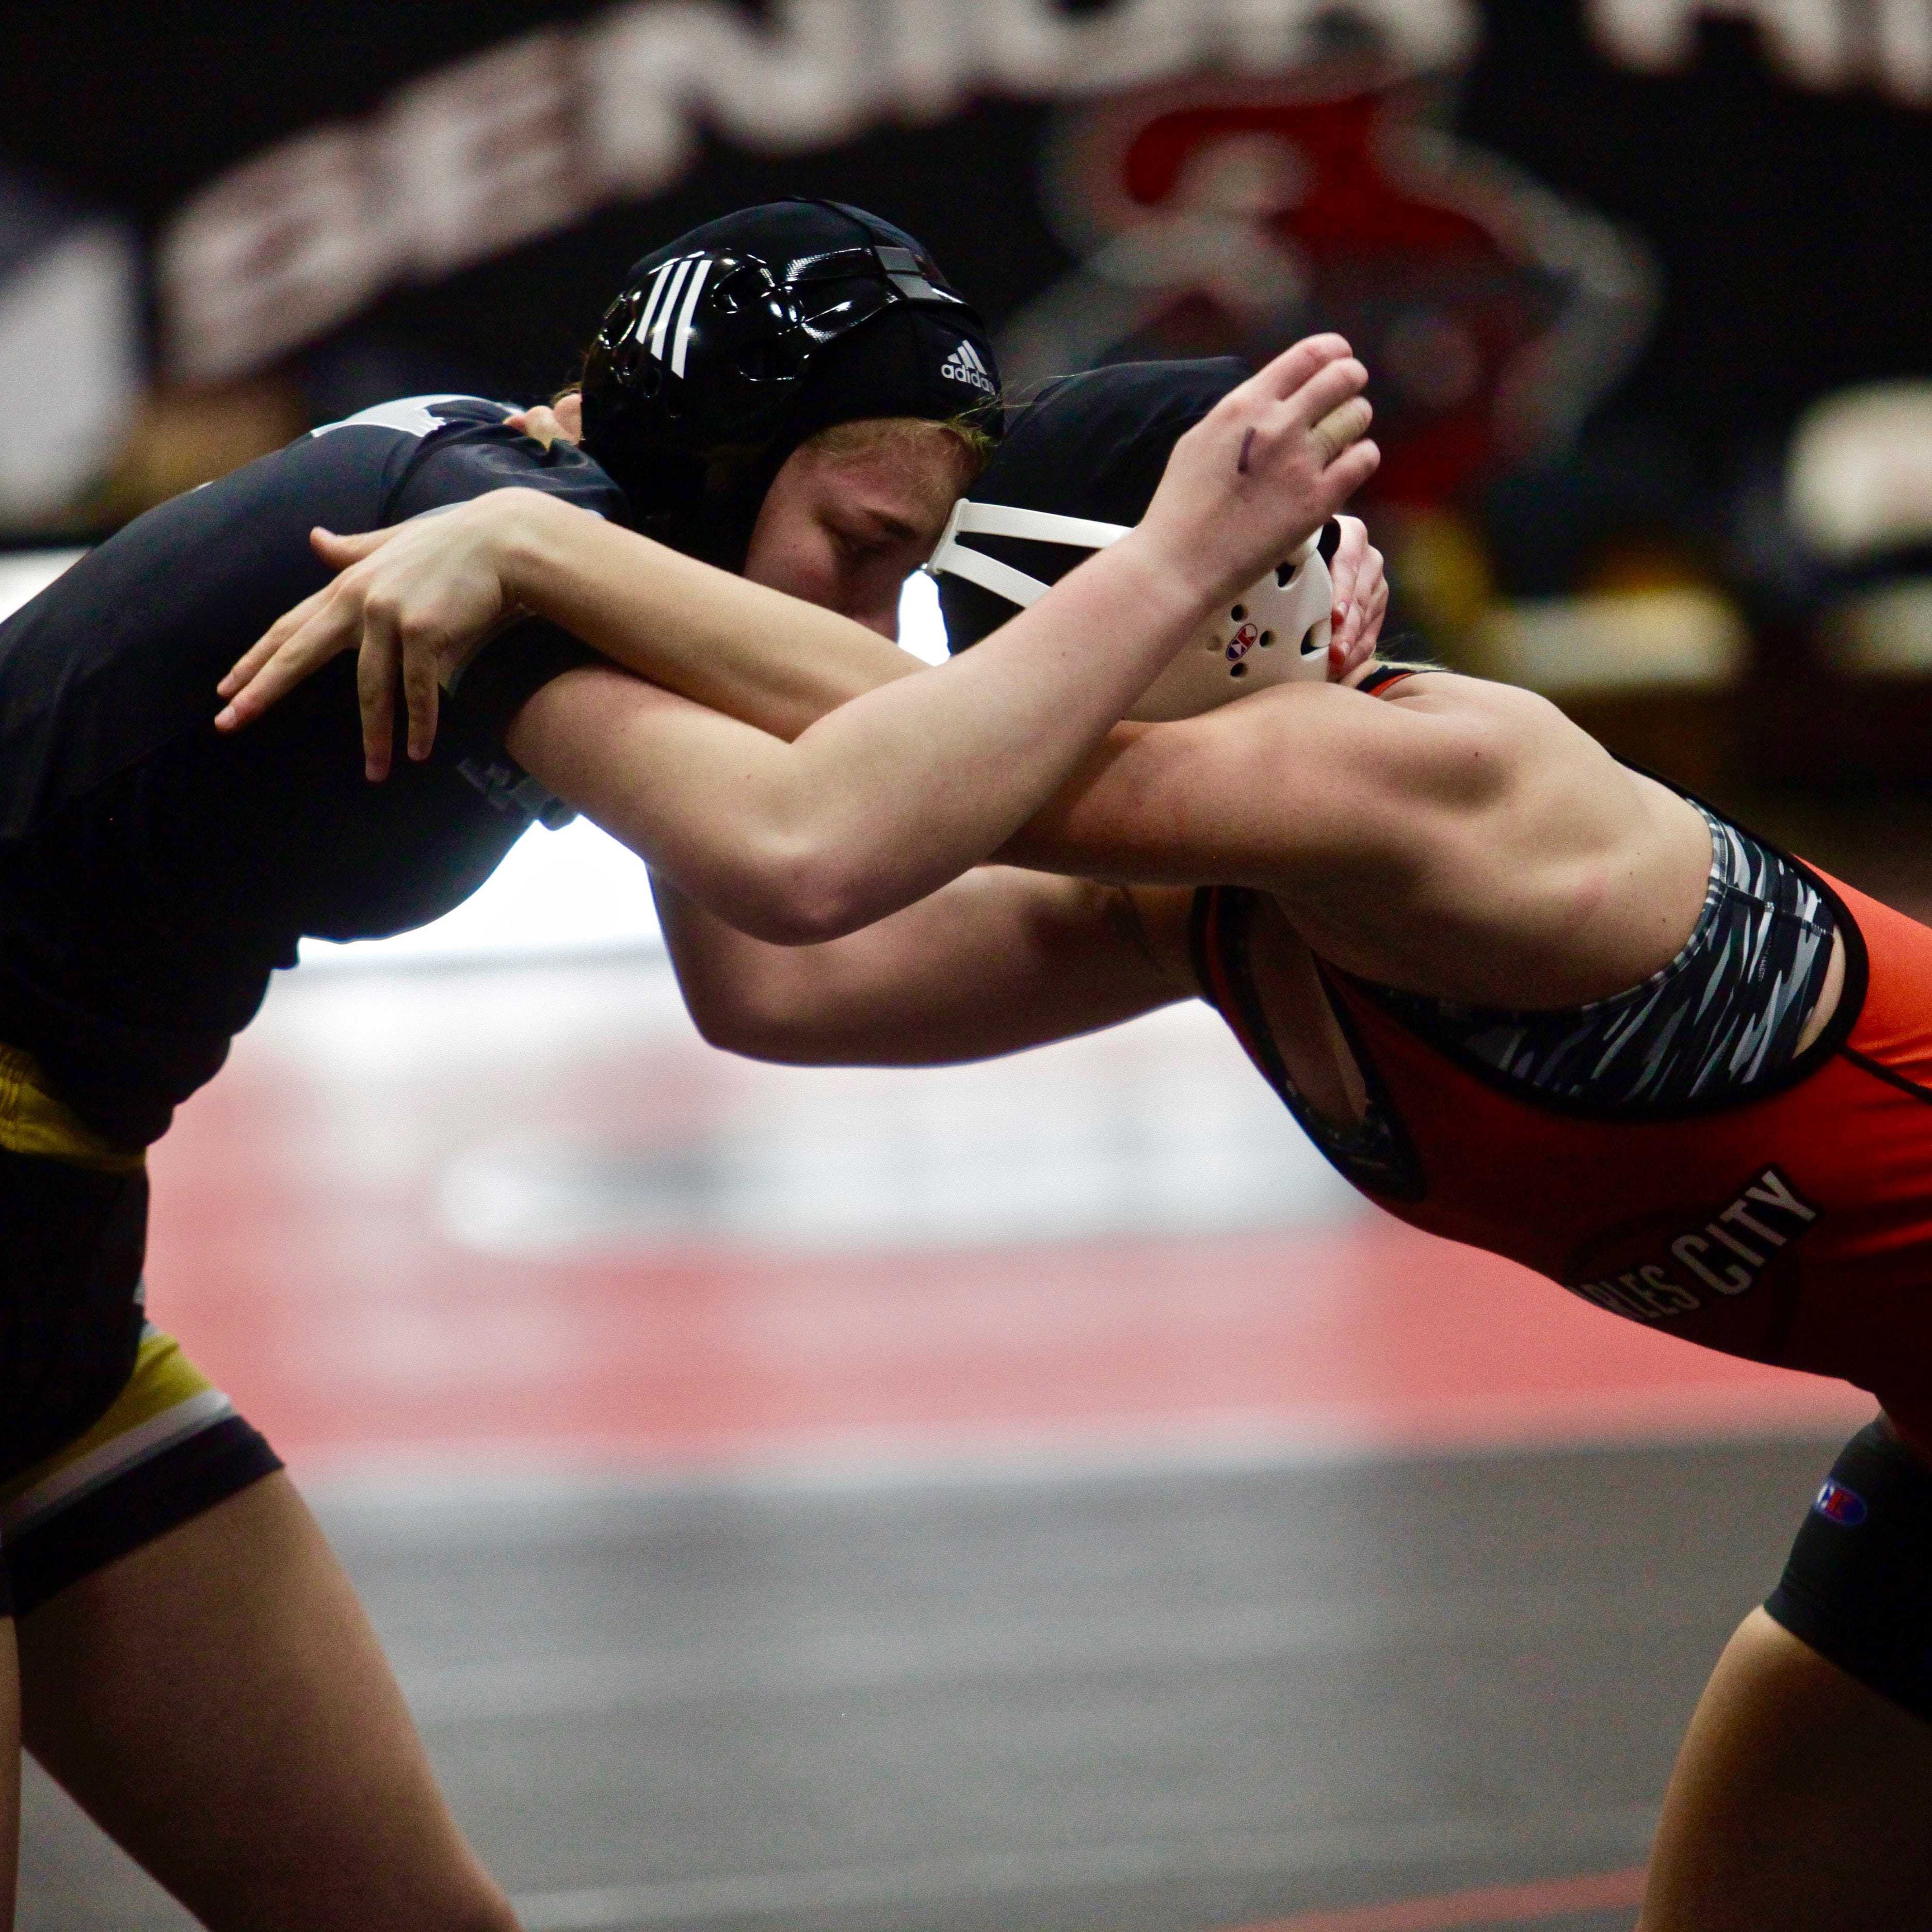 As other states add girls' wrestling, support in Iowa continues to grow